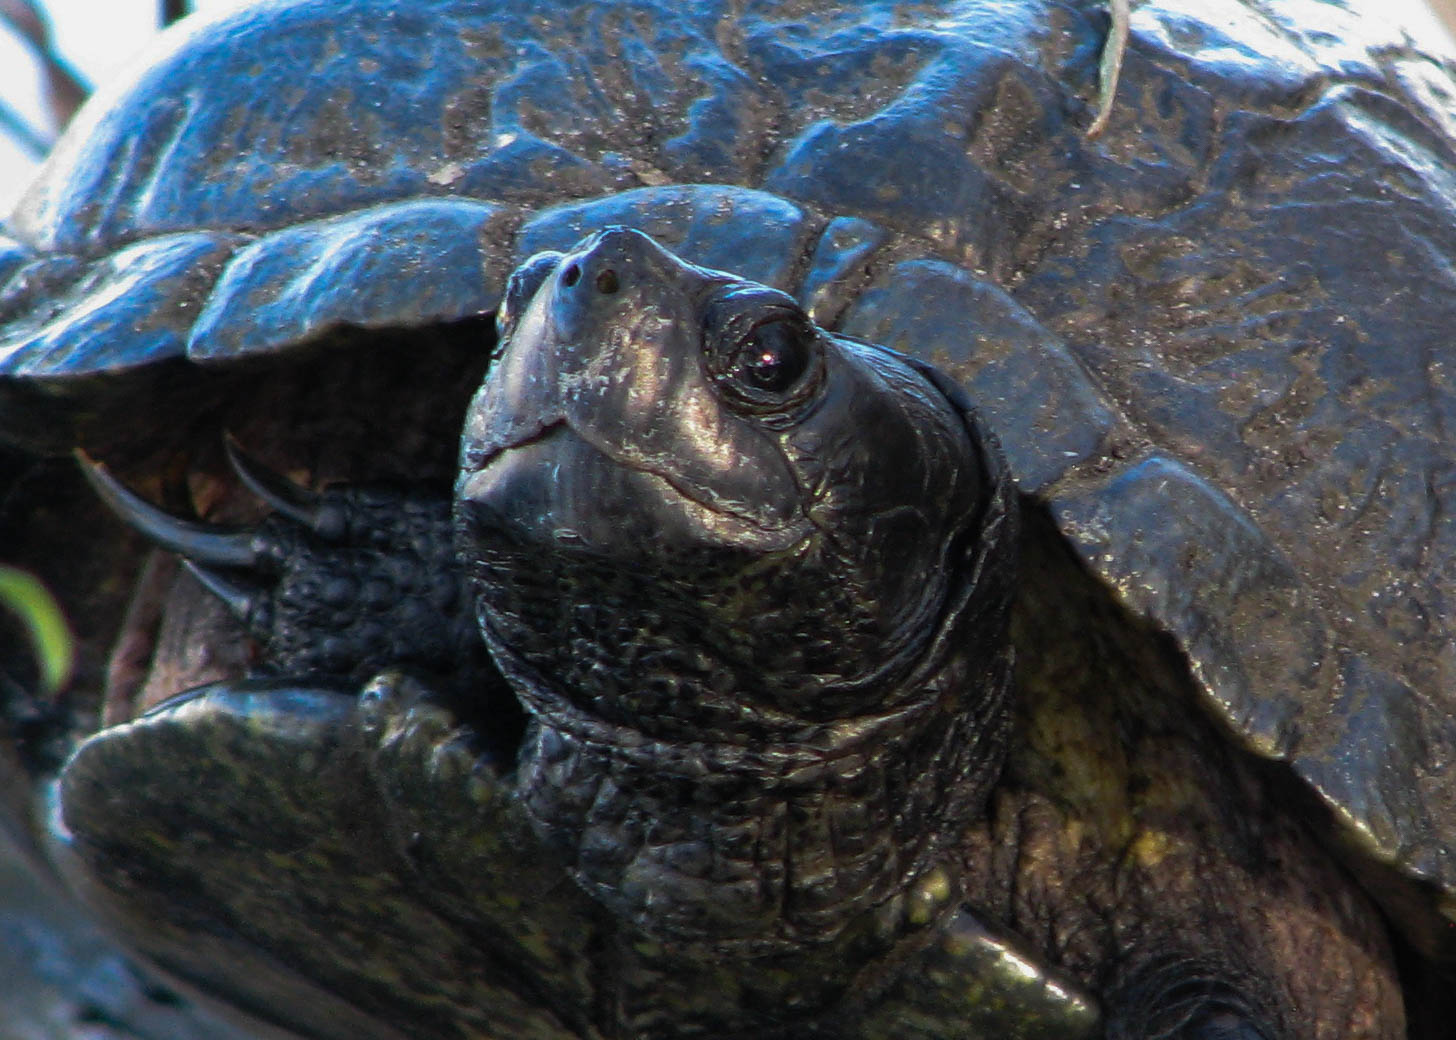 Head shot of turtle.